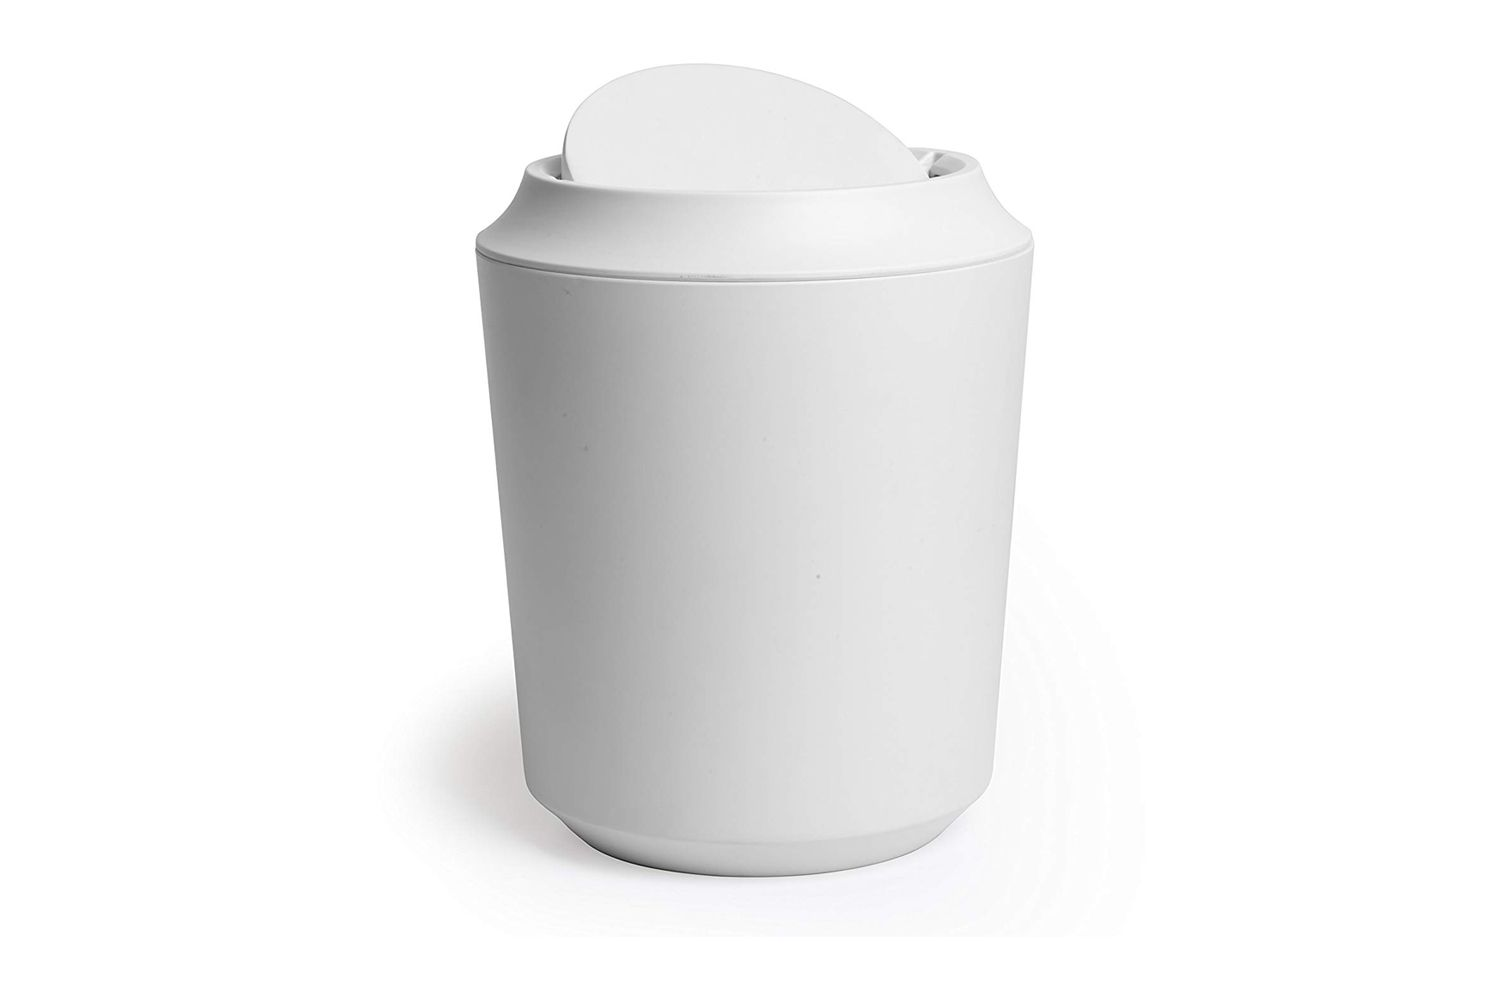 Chic Trash Cans For Your Kitchen Bathroom Bathroom Trash Can Trash Cans Canning